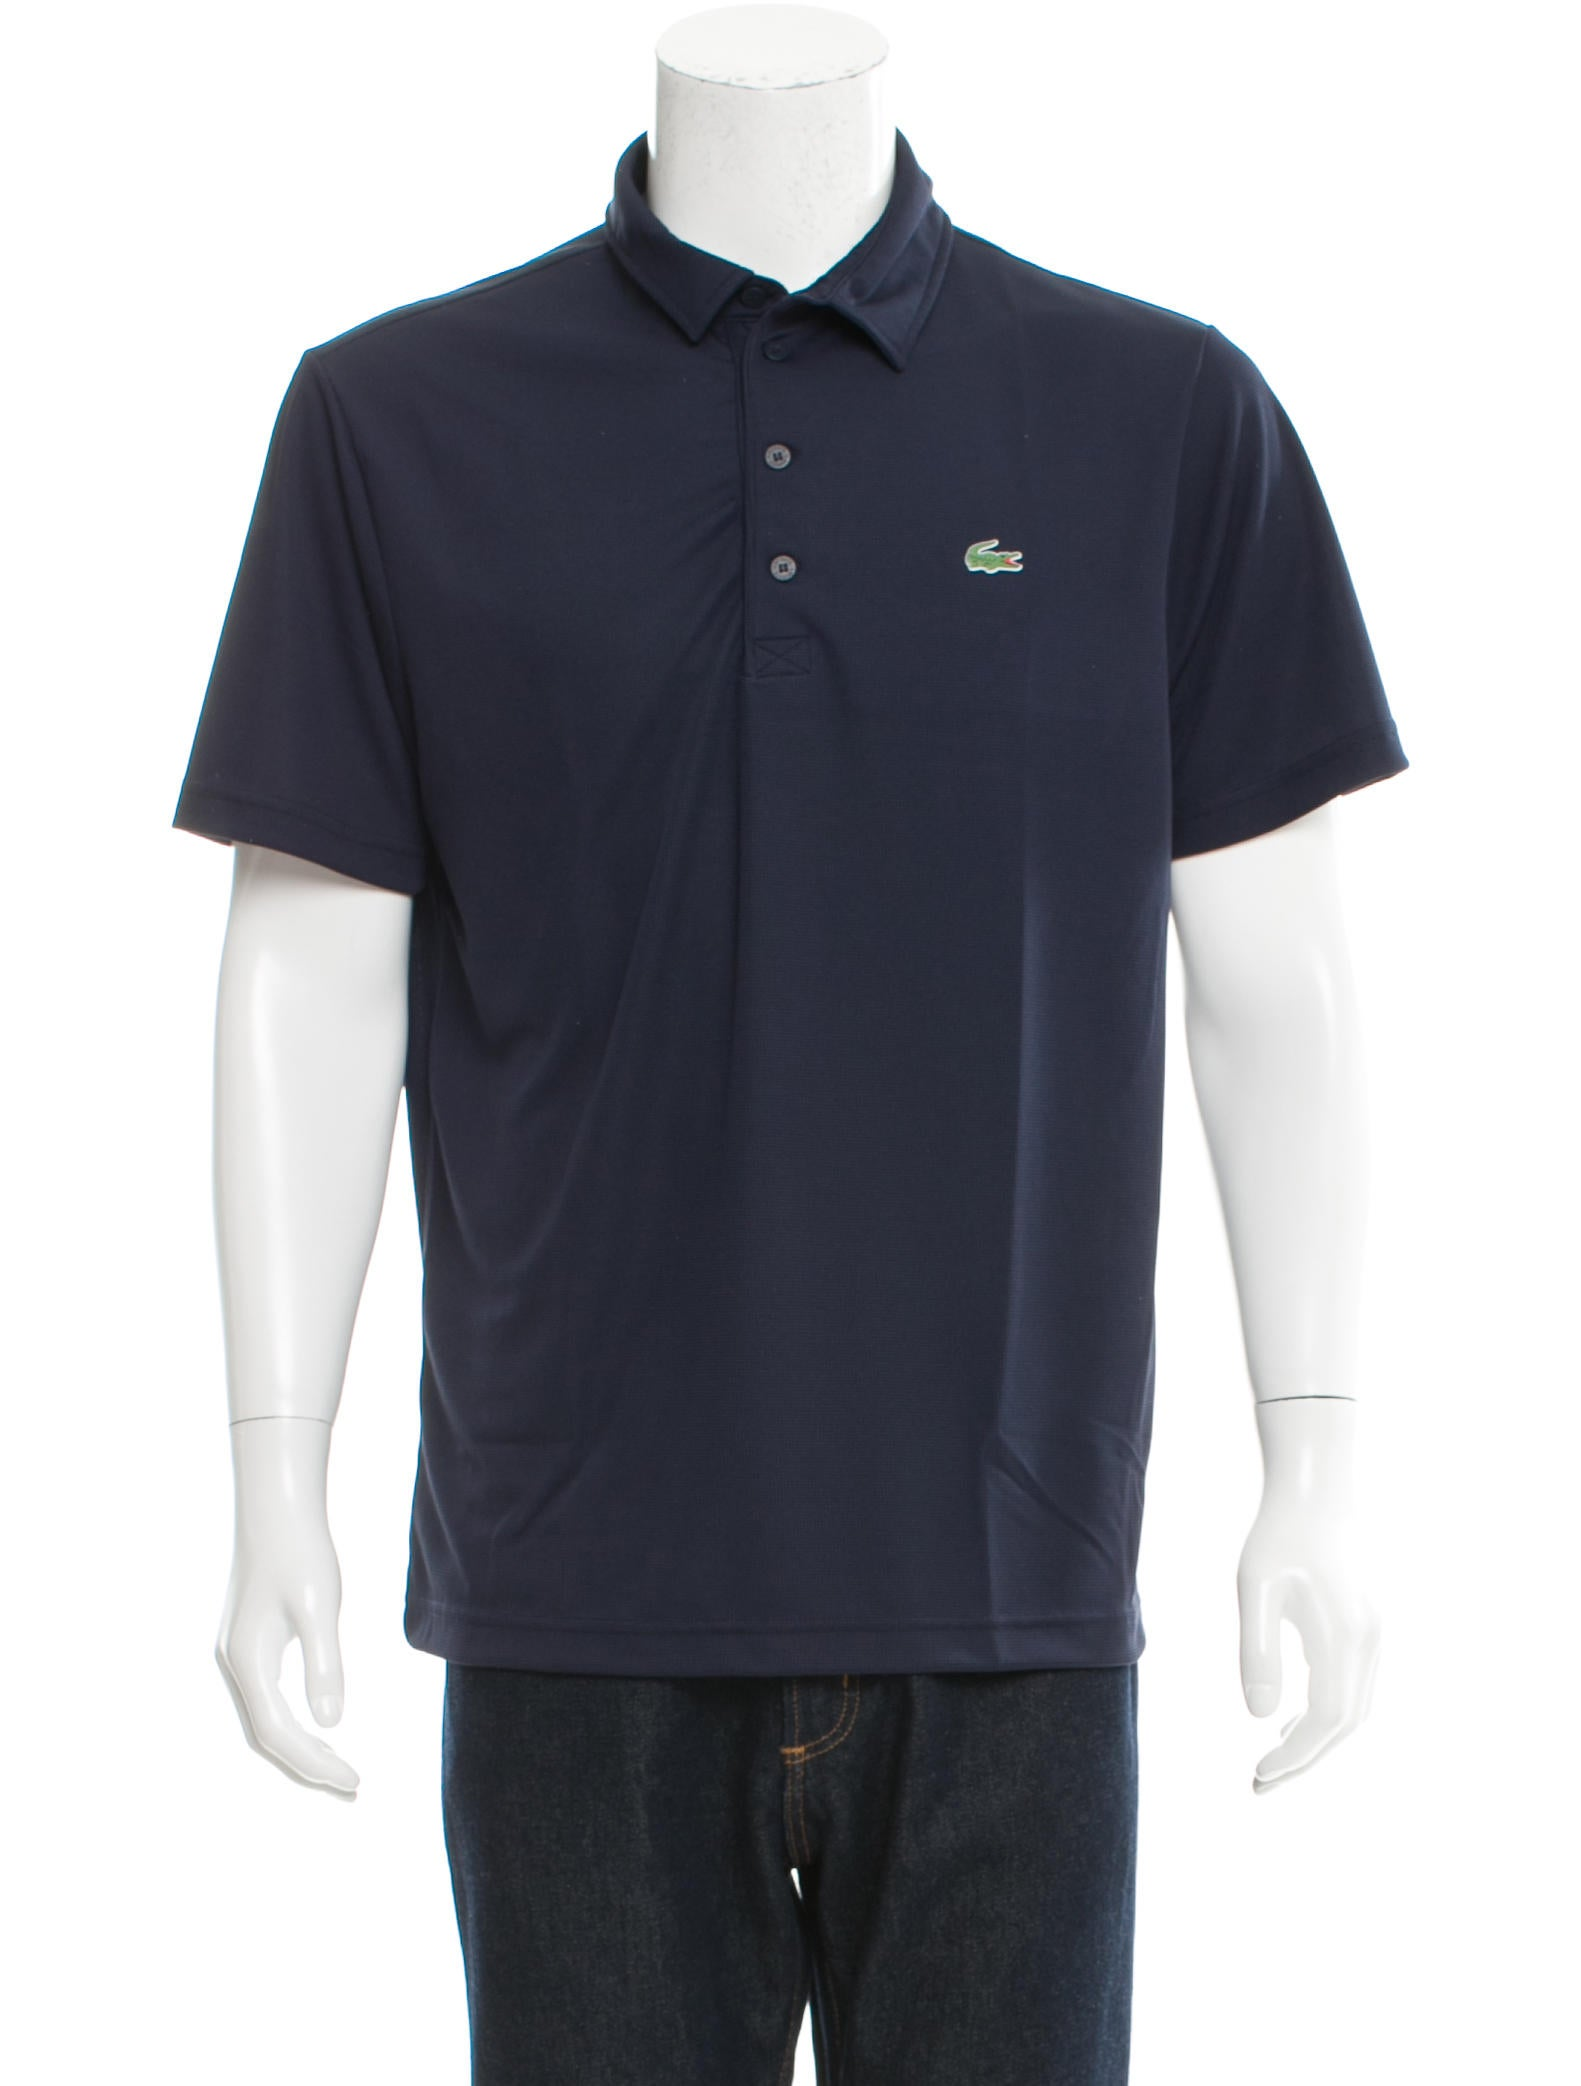 lacoste logo embroidered polo shirt w tags clothing